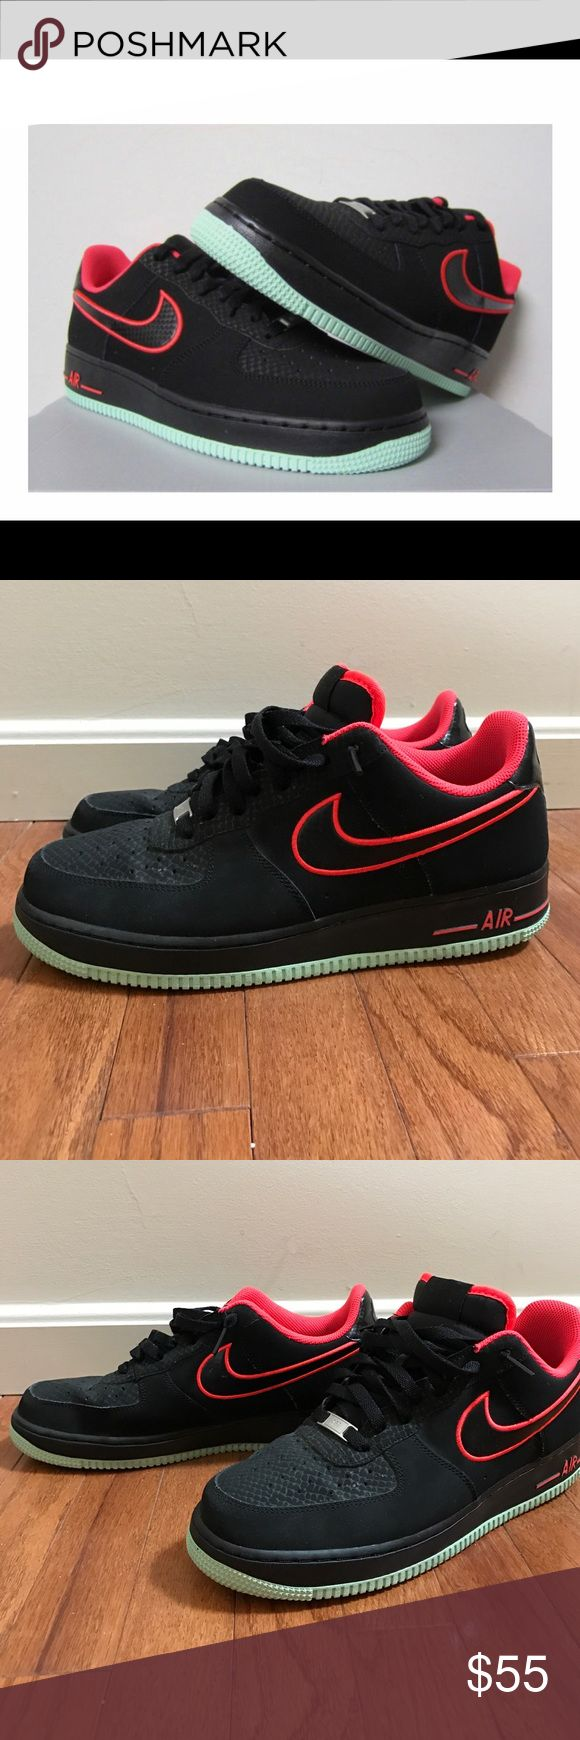 Men's Nike Air Force Ones EUC Nike Air Force 1 Low shoes. Unique colors - black, laser crimson, arctic green. Great condition! Missing the insoles. If purchased at regular price, I'll throw in some new ones with order. Nike Shoes Athletic Shoes